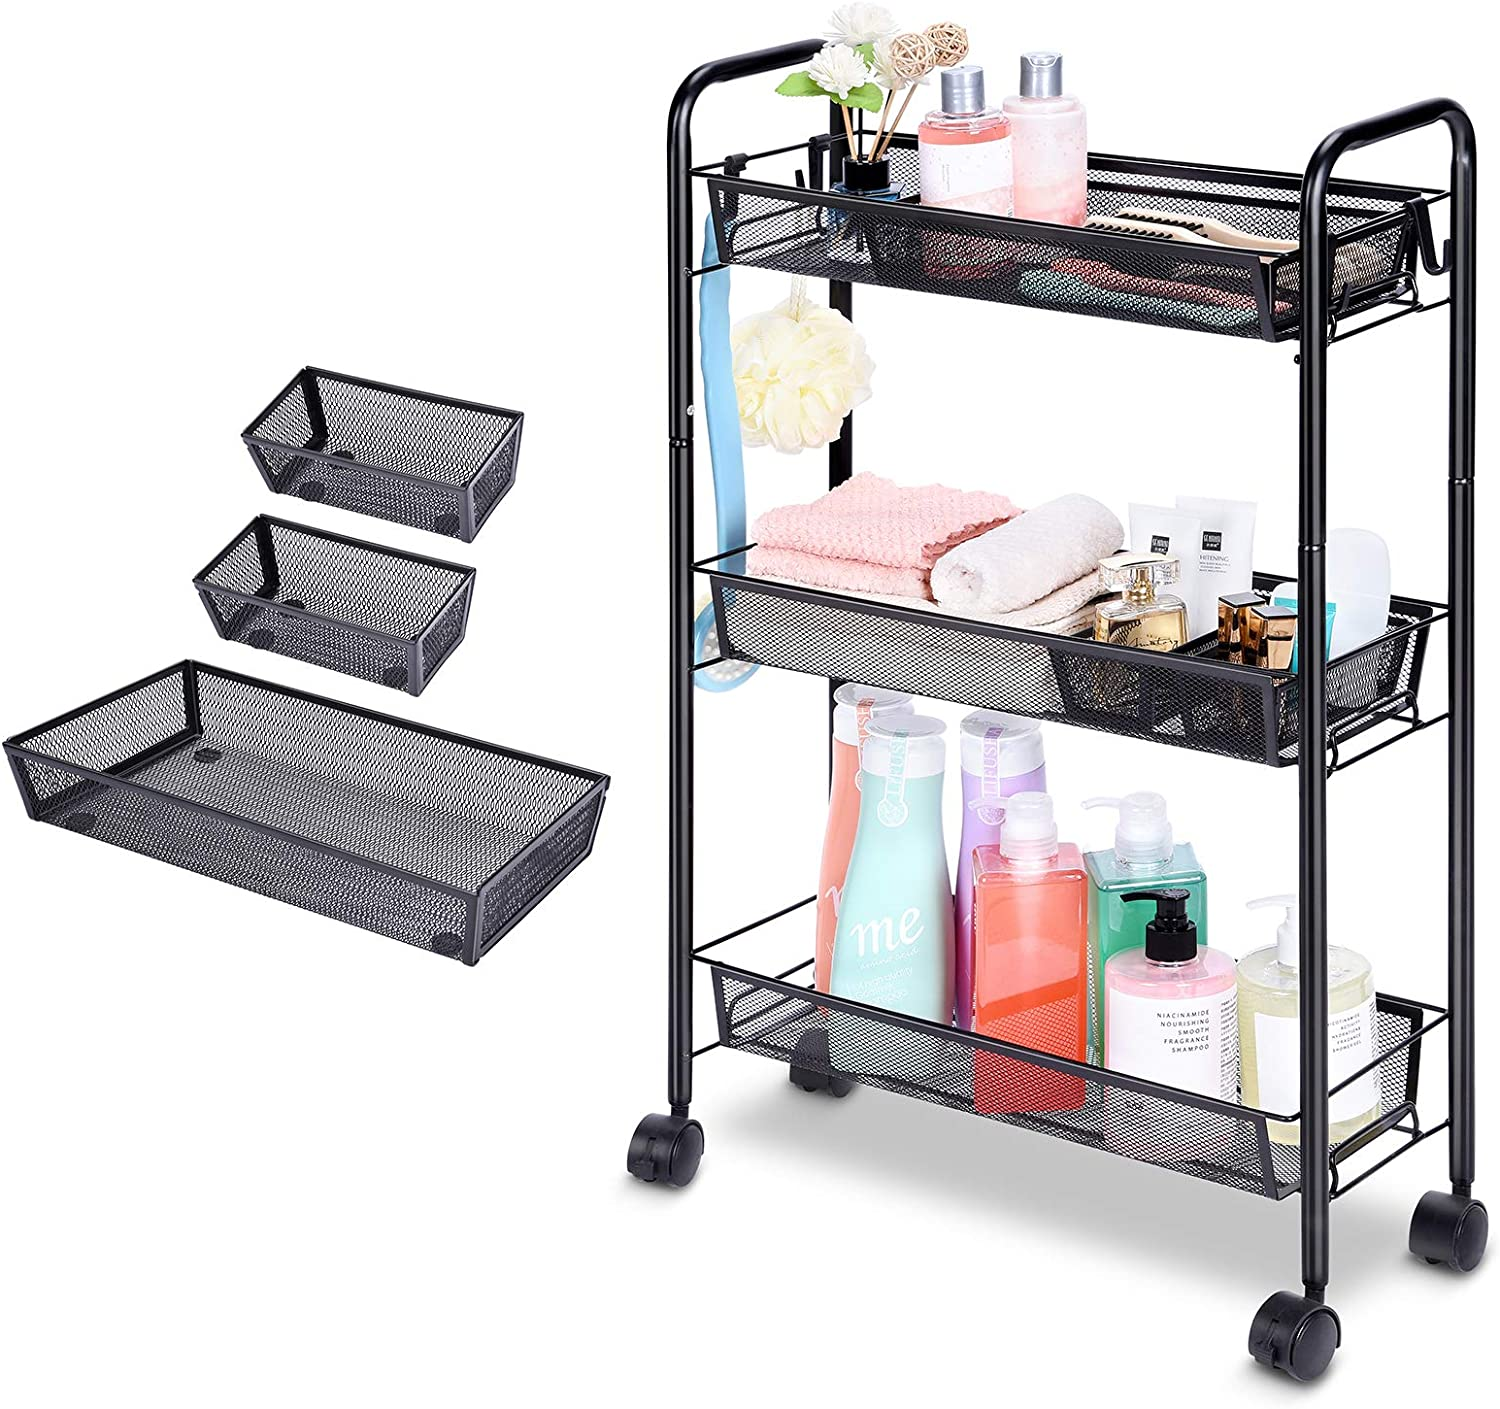 3 Tier Slim Bathroom Storage Cart, Mobile Shelving Unit with 4 Hooks 3 Small Organizer Tray, Lockable Trolley Rolling Cart for Tower Rack, Black